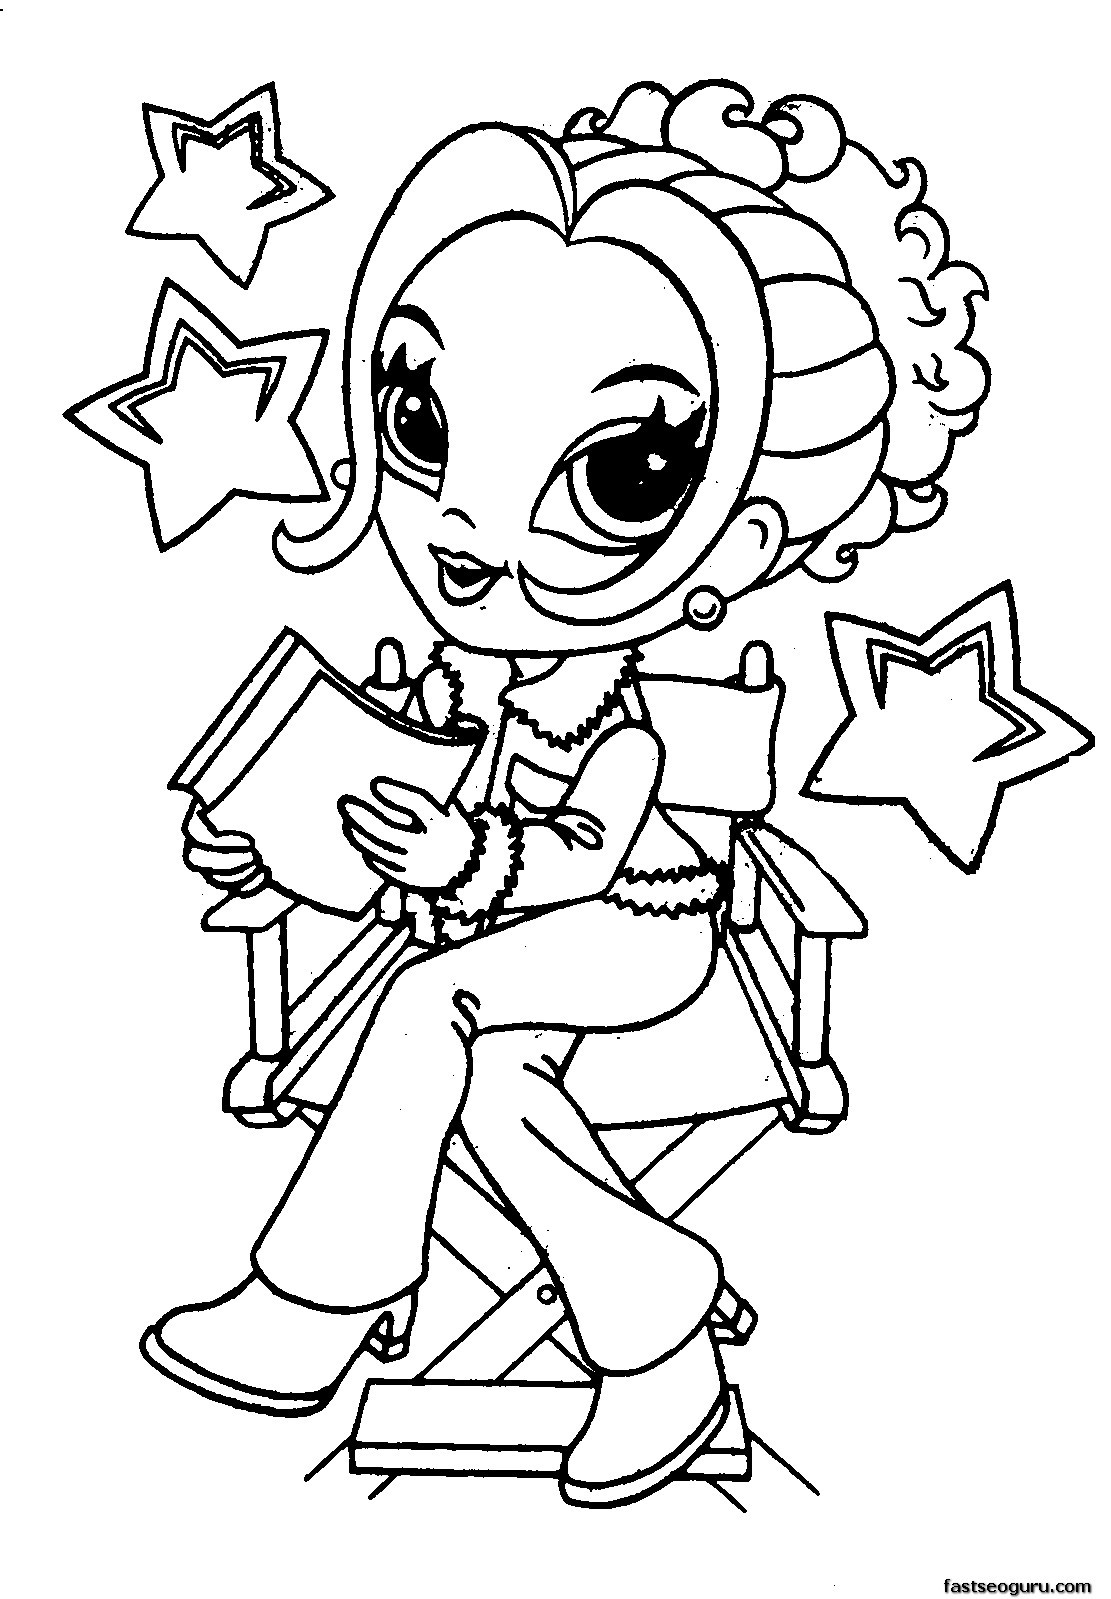 Coloring Pages For Girls Only  Coloring Pages For Girls And Up ly Coloring Pages